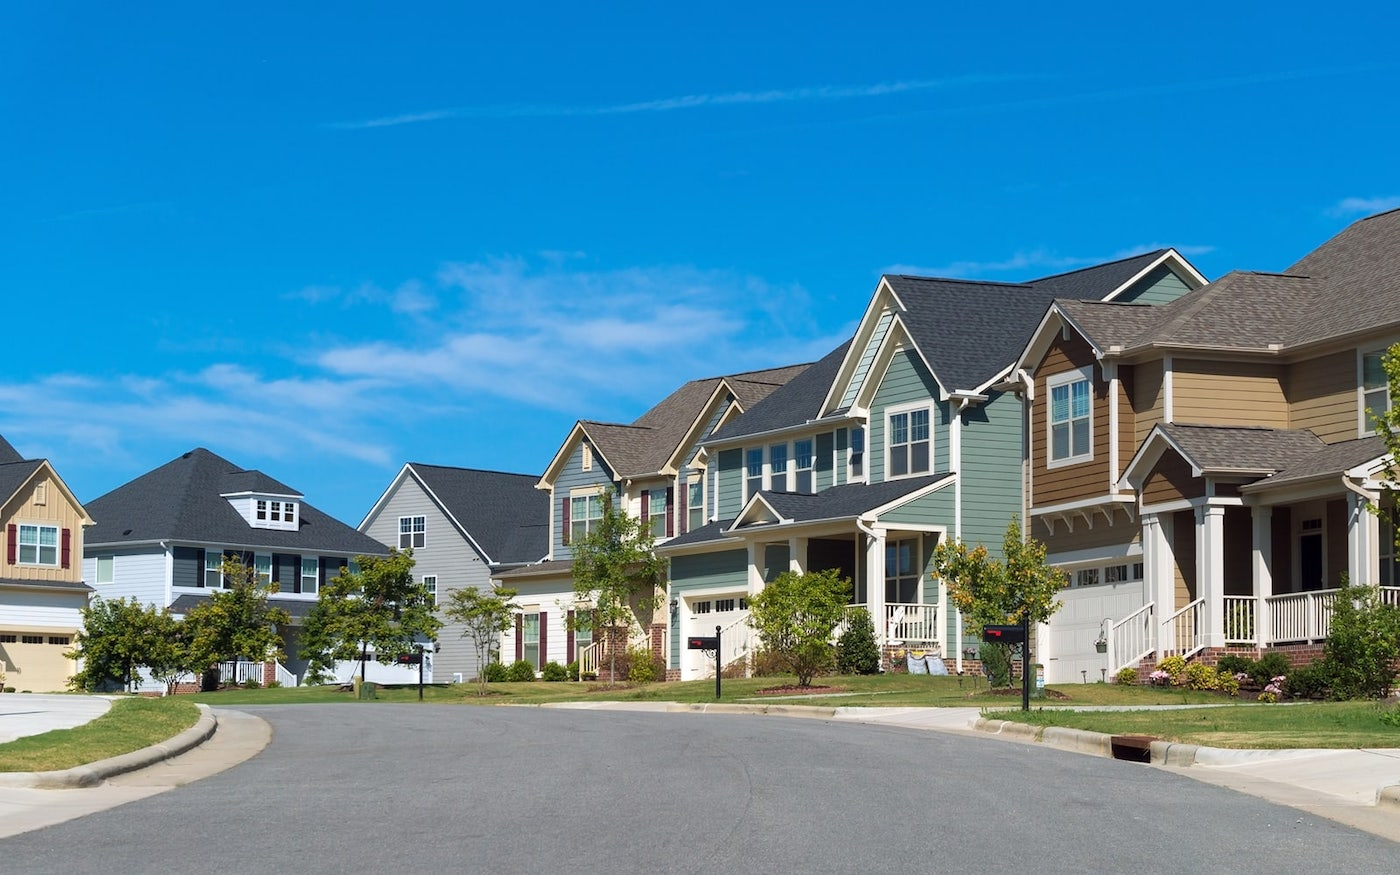 Tips for House Hunting when Relocating to a New Area